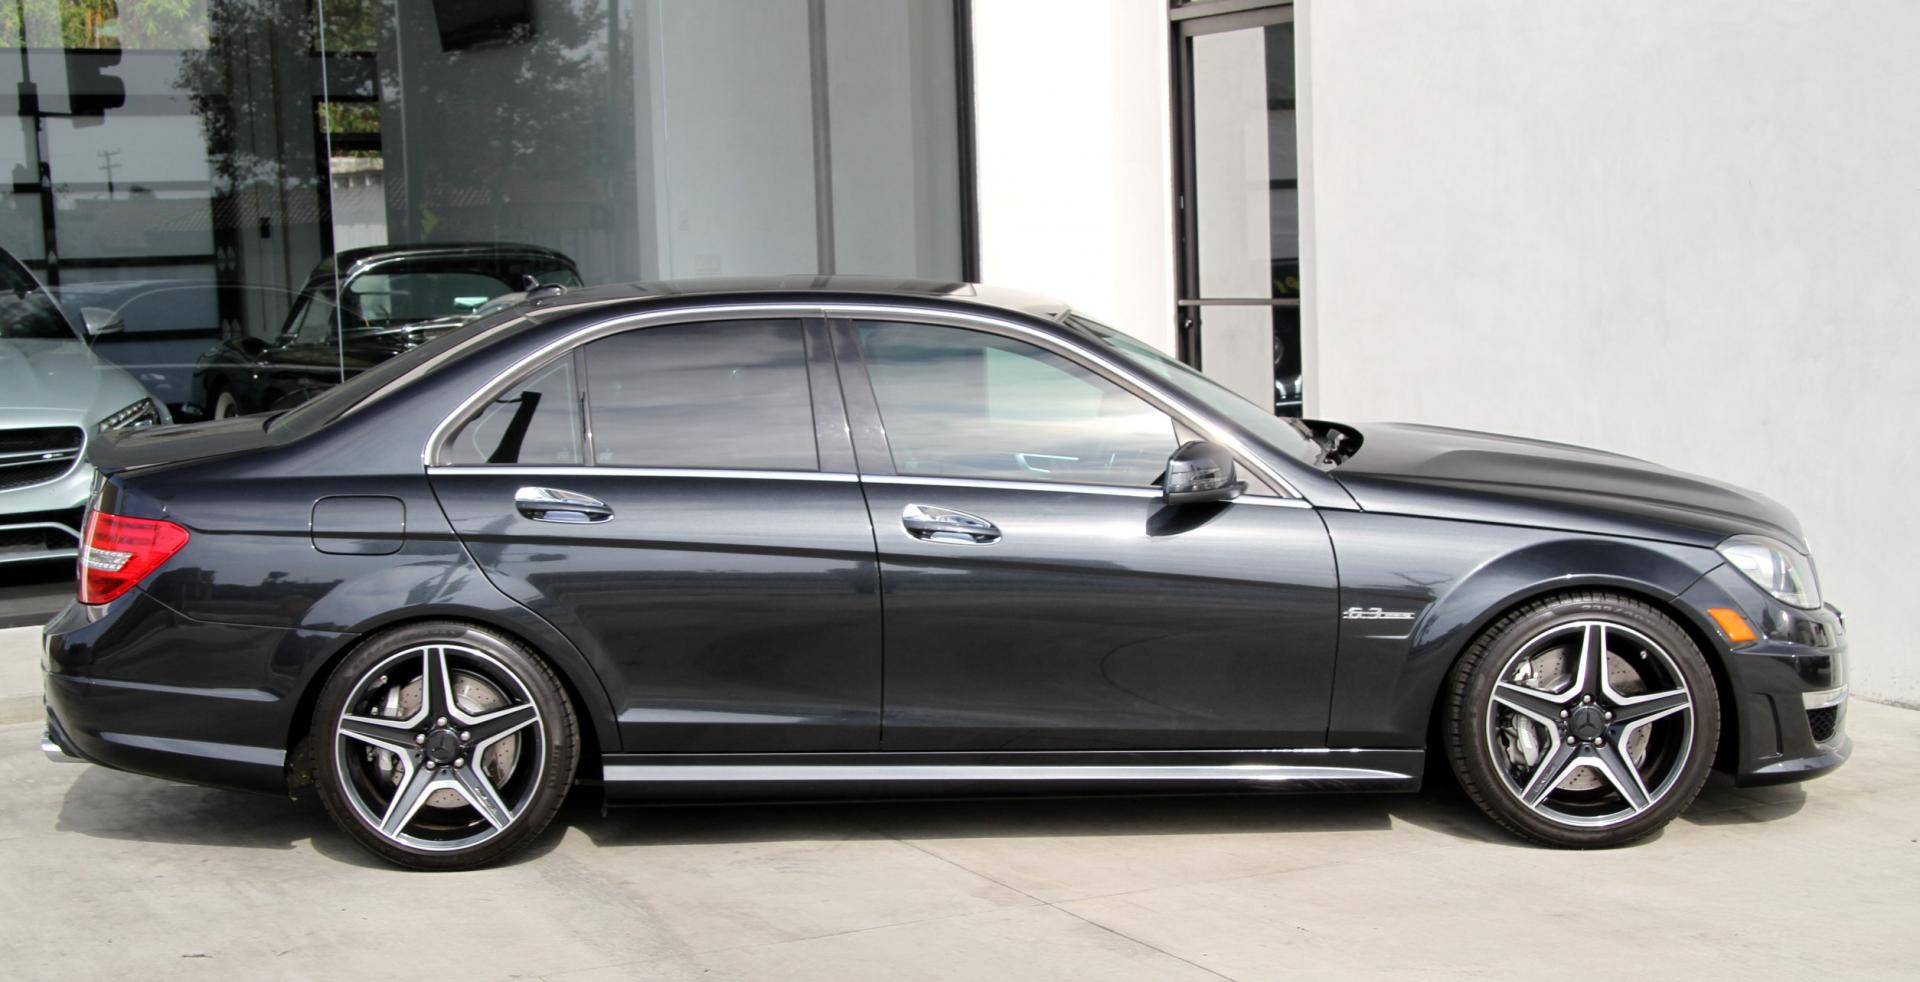 2012 mercedes benz c 63 amg stock 5888a for sale near for Mercedes benz financial services address